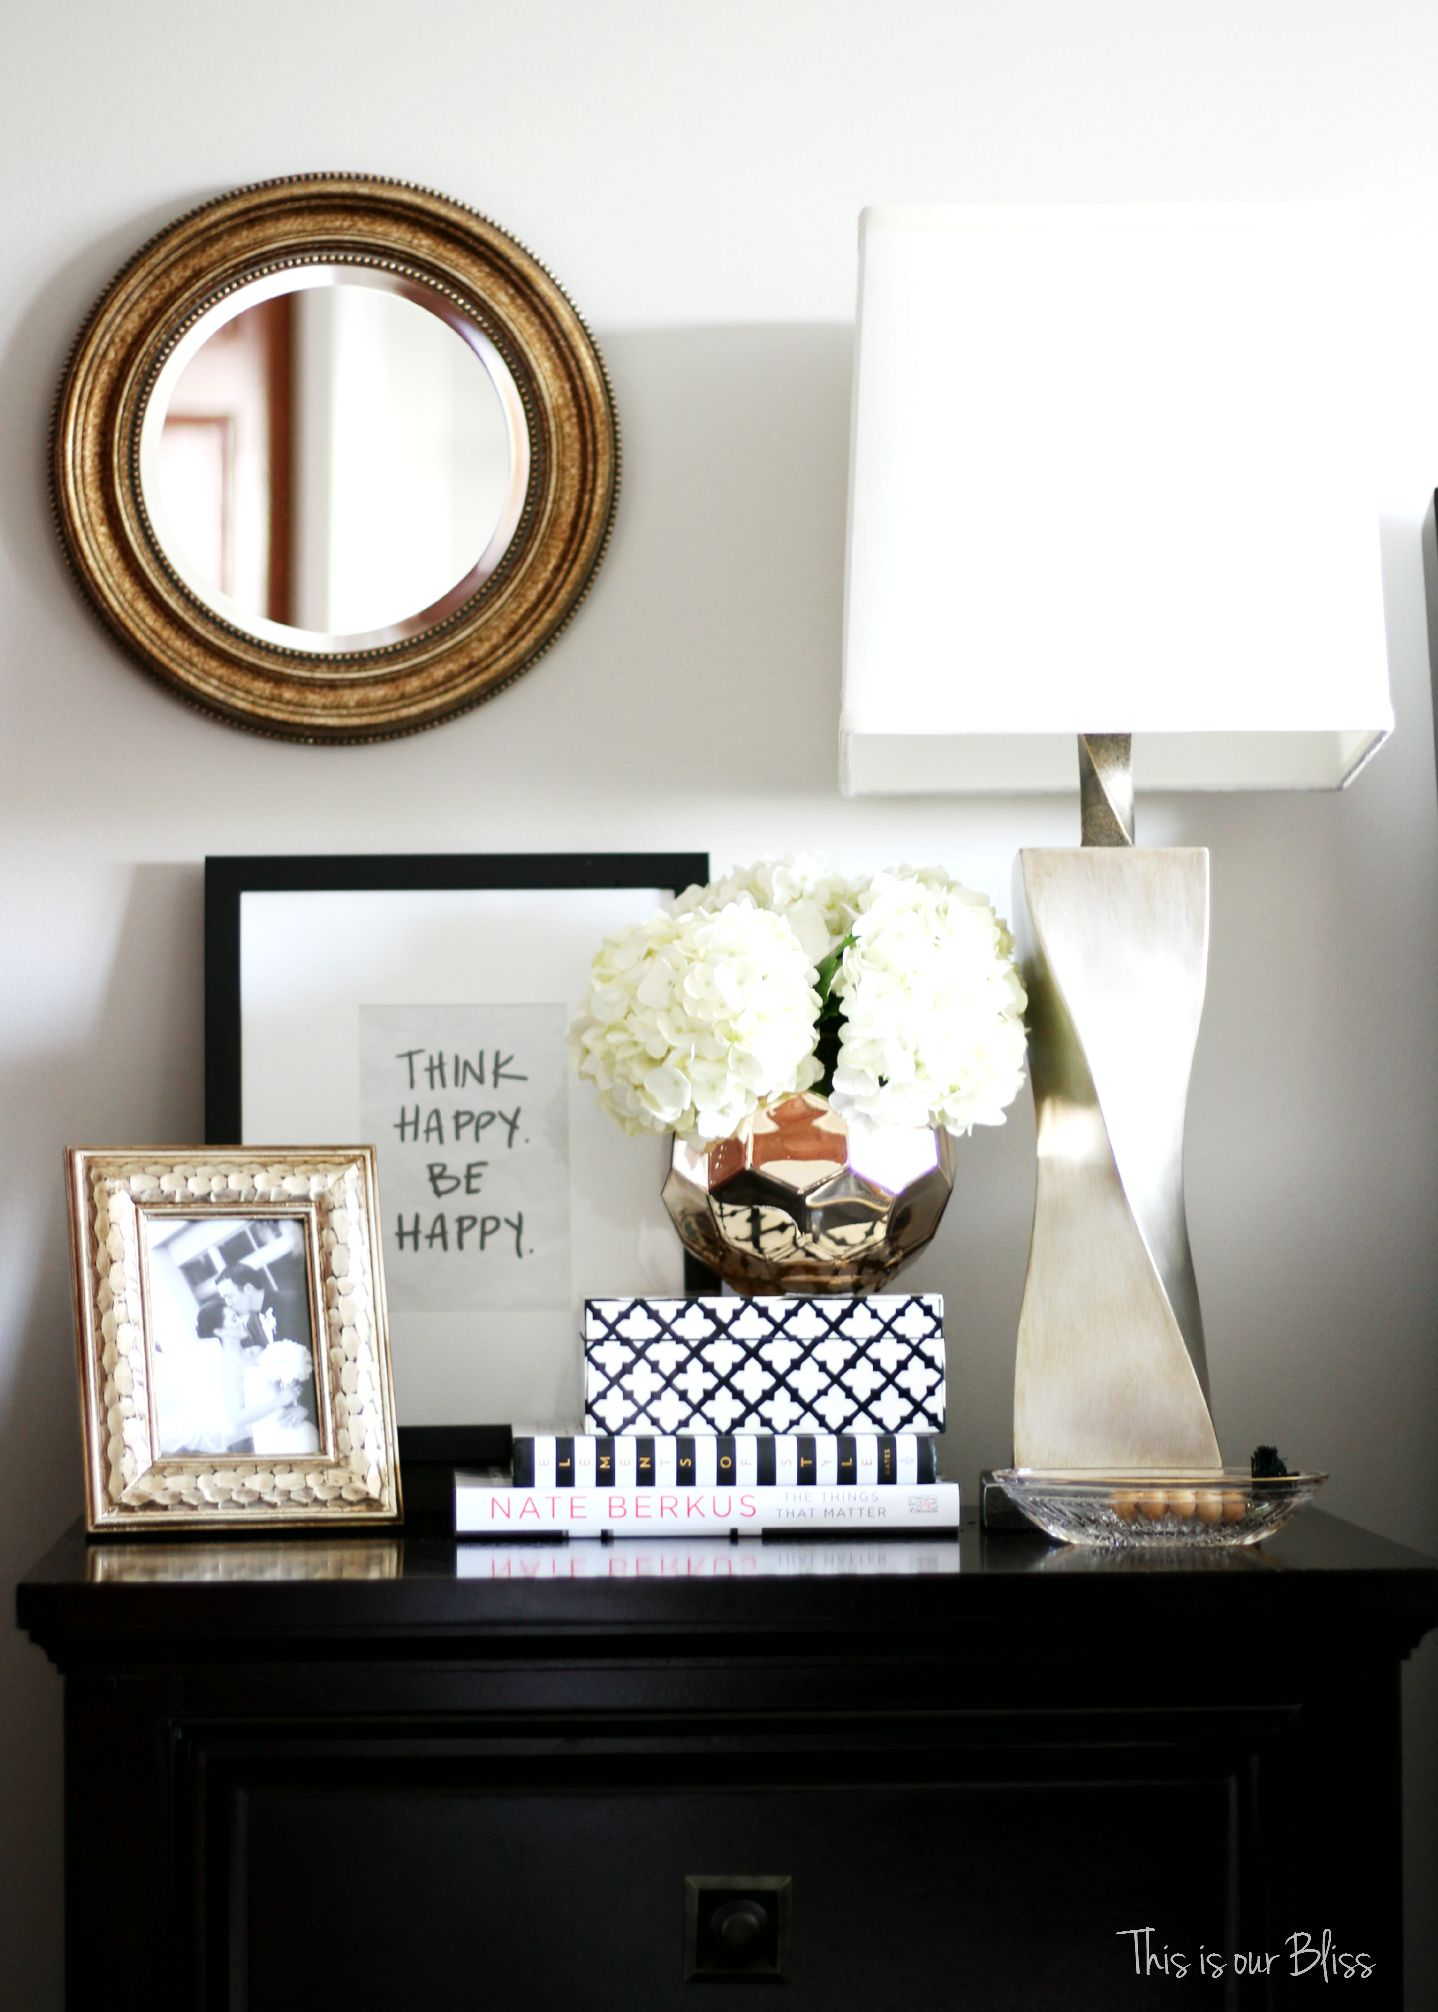 My Bedside Table: Shop My Nightstand [Bedside Table Decorating Sources